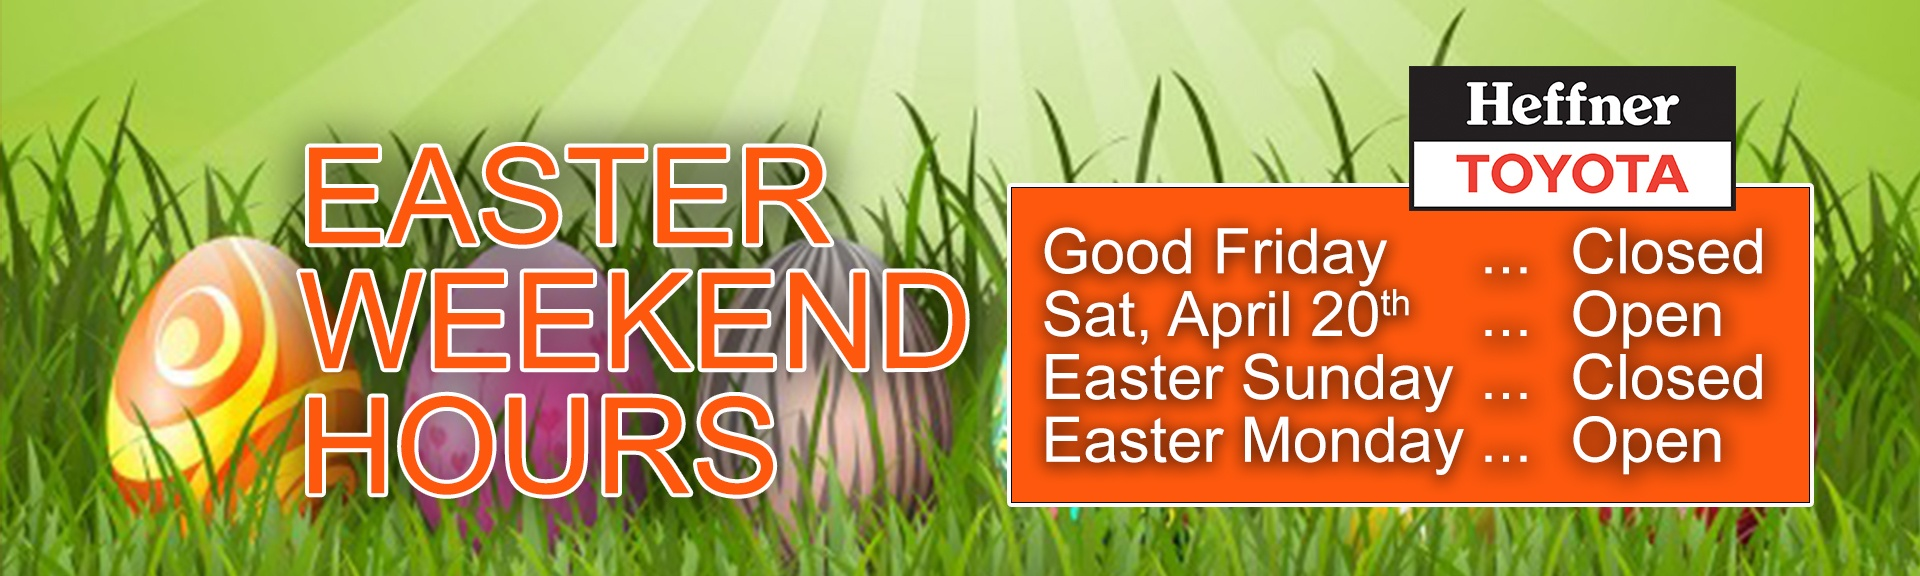 Heffner Toyota Easter Weekend Hours